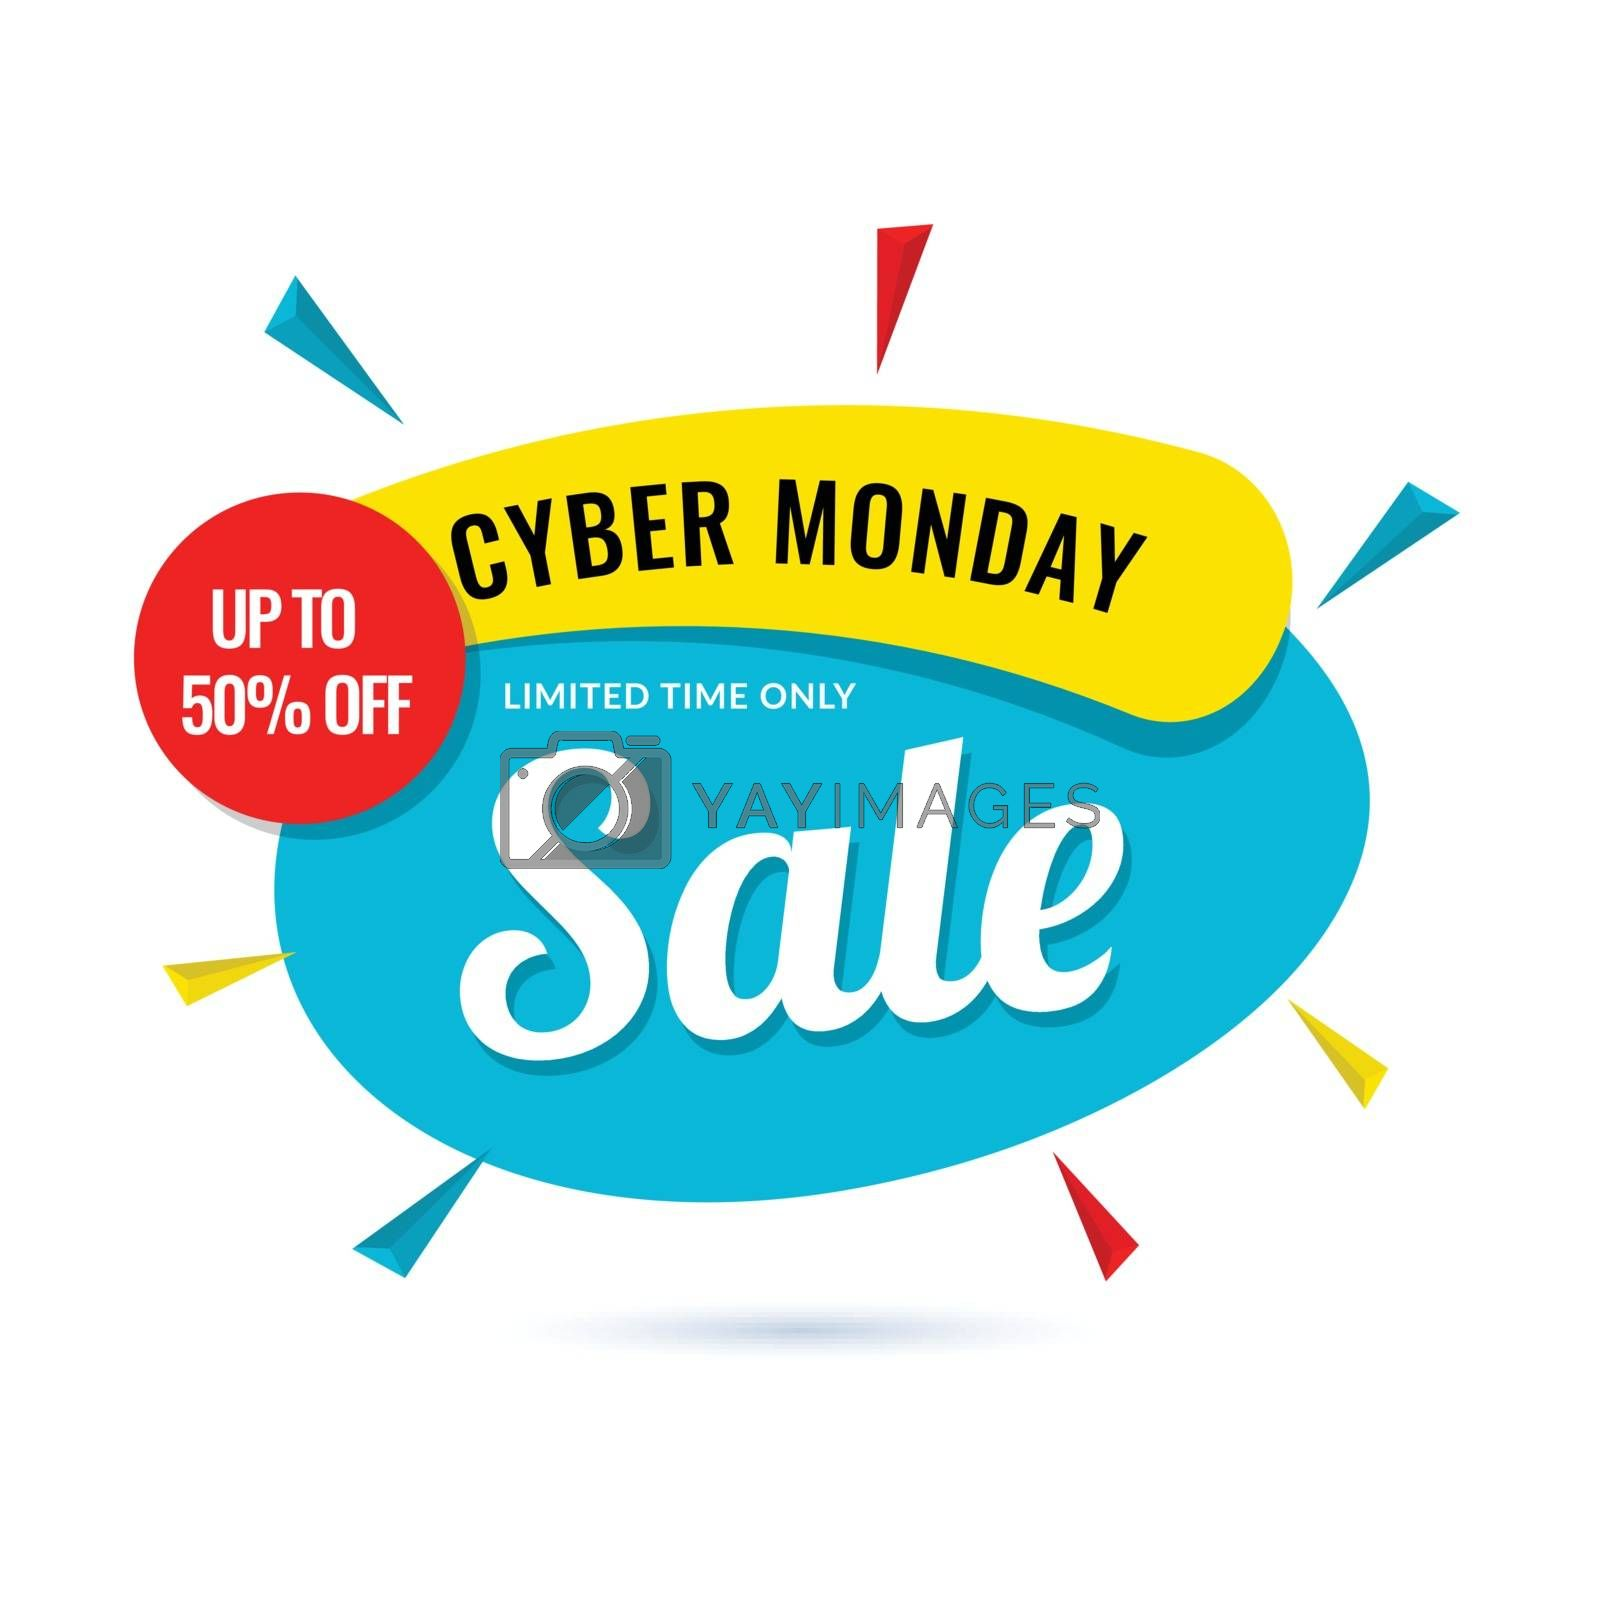 Cyber Monday Sale poster upto 50% offer on white background. by aispl